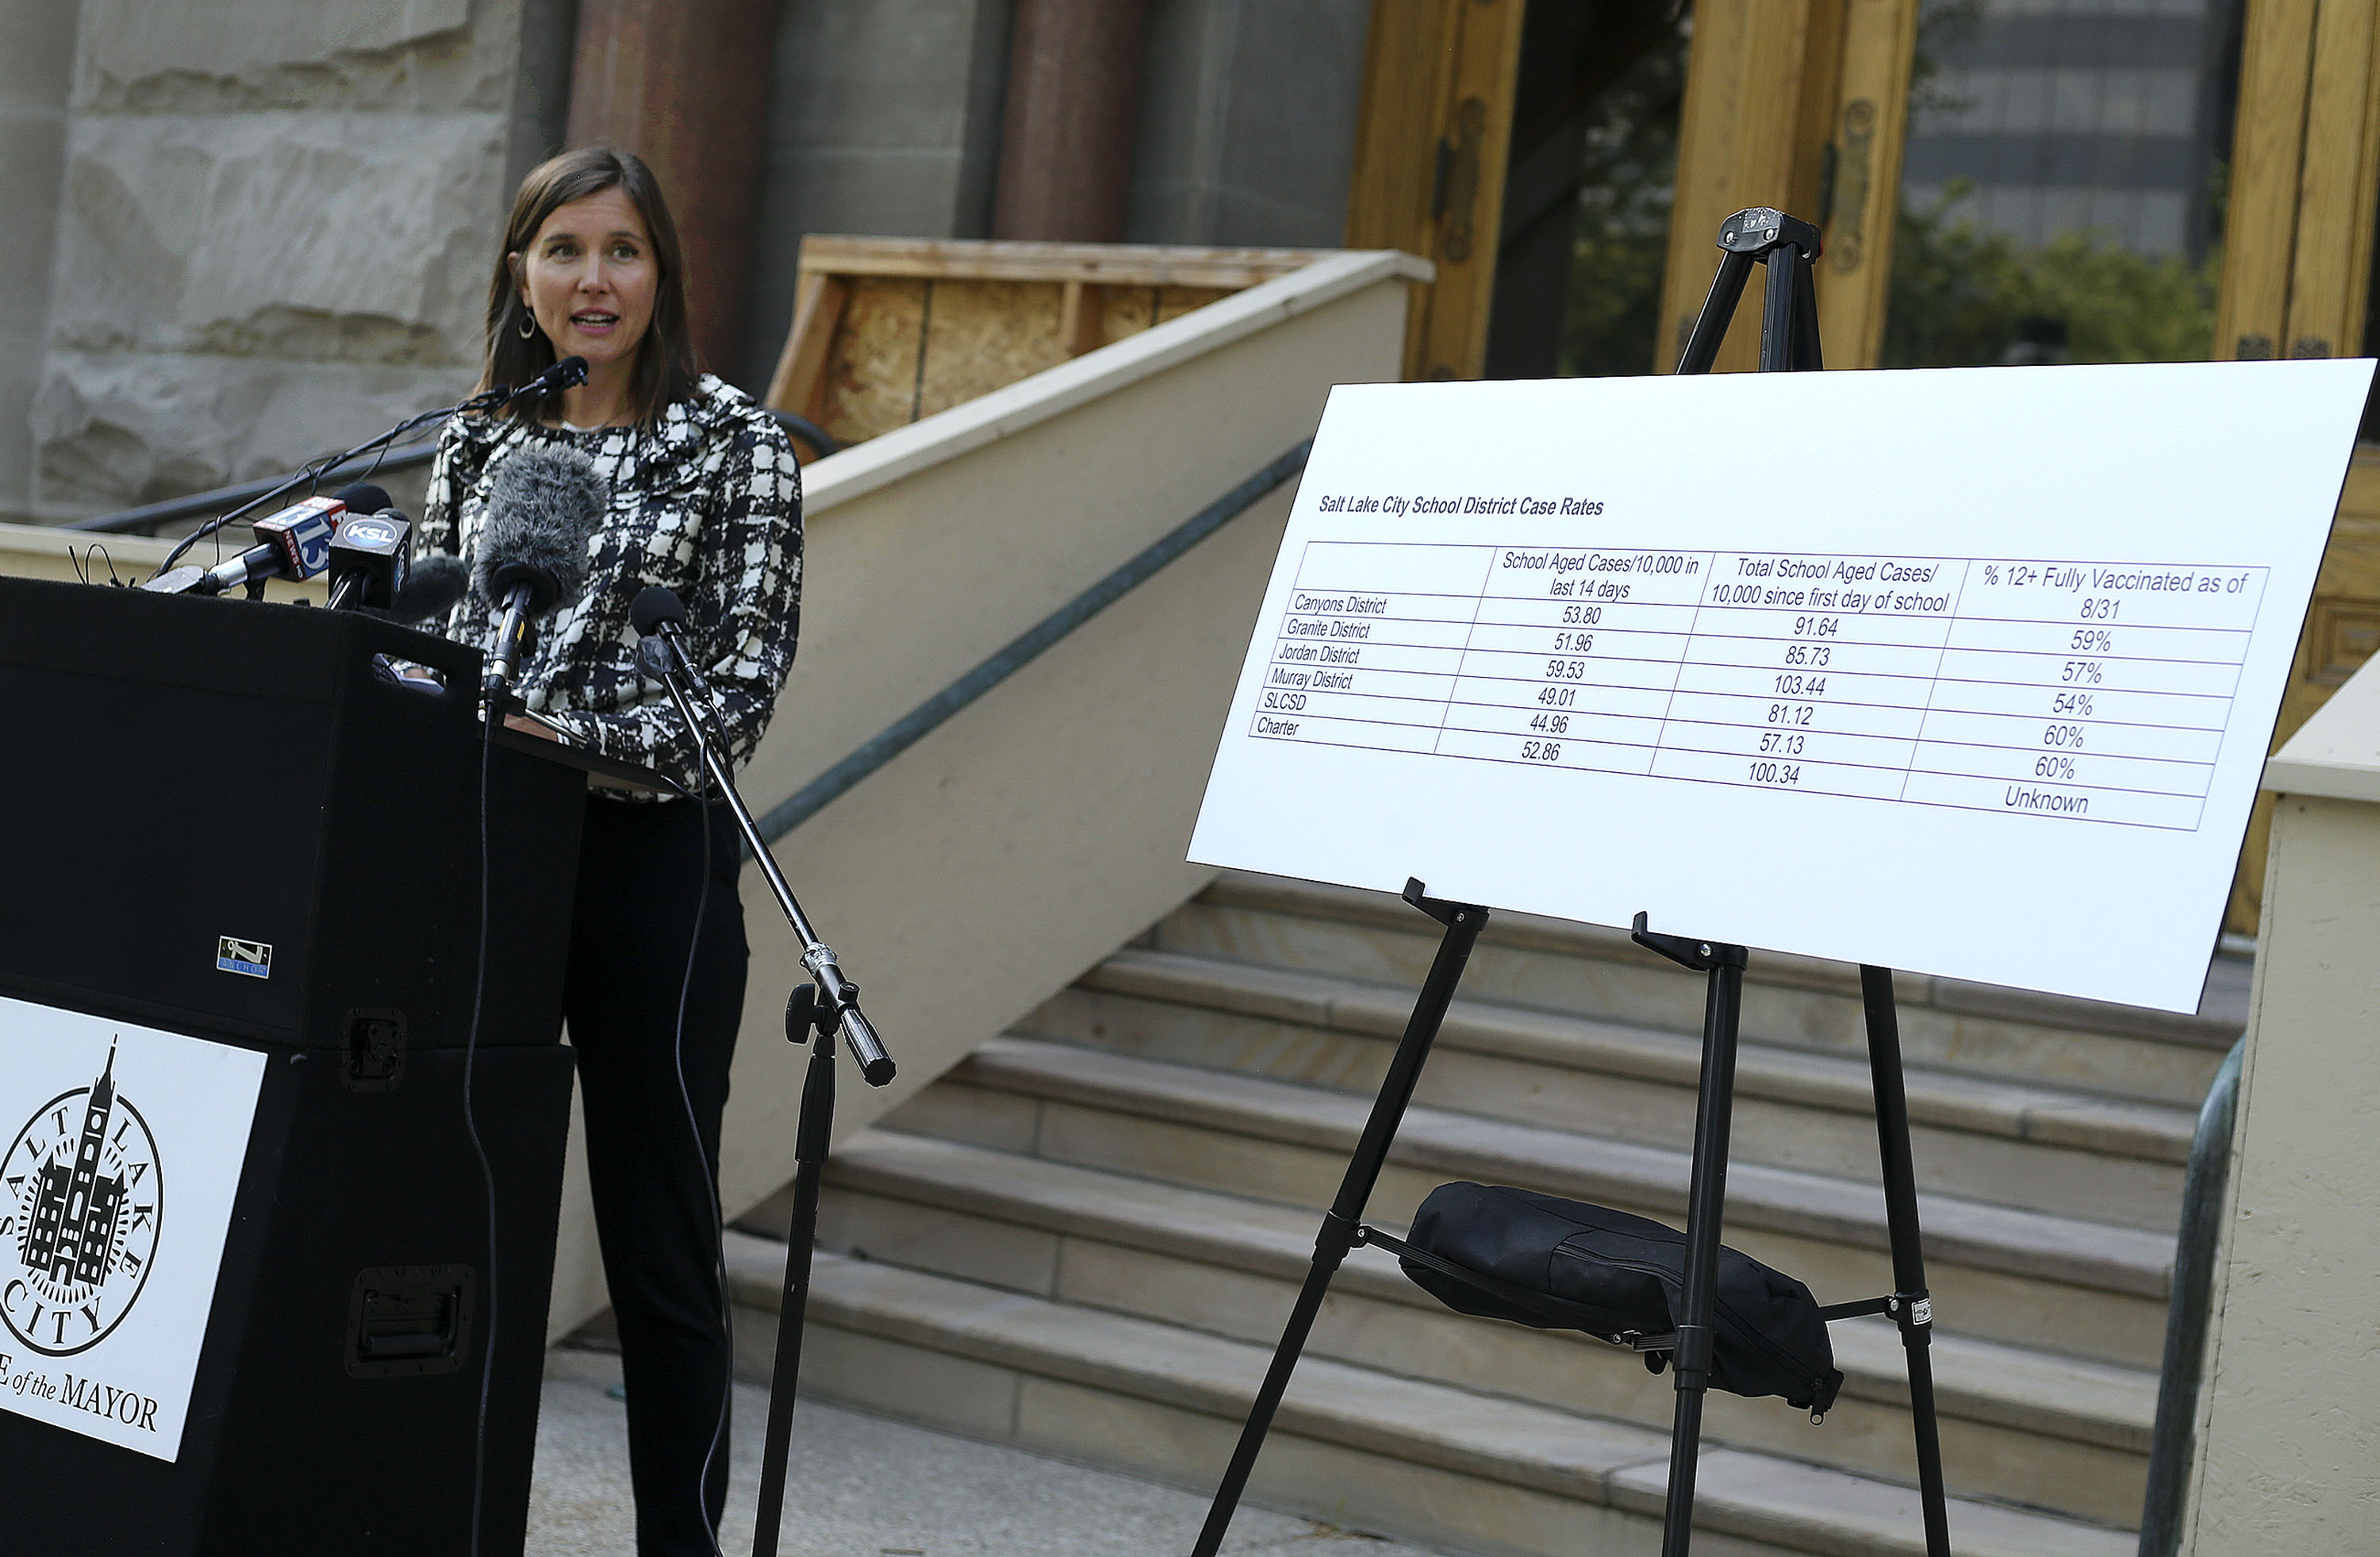 Salt Lake City Mayor Erin Mendenhall speaks about the mask requirement for K-12 students in Salt Lake City schools.